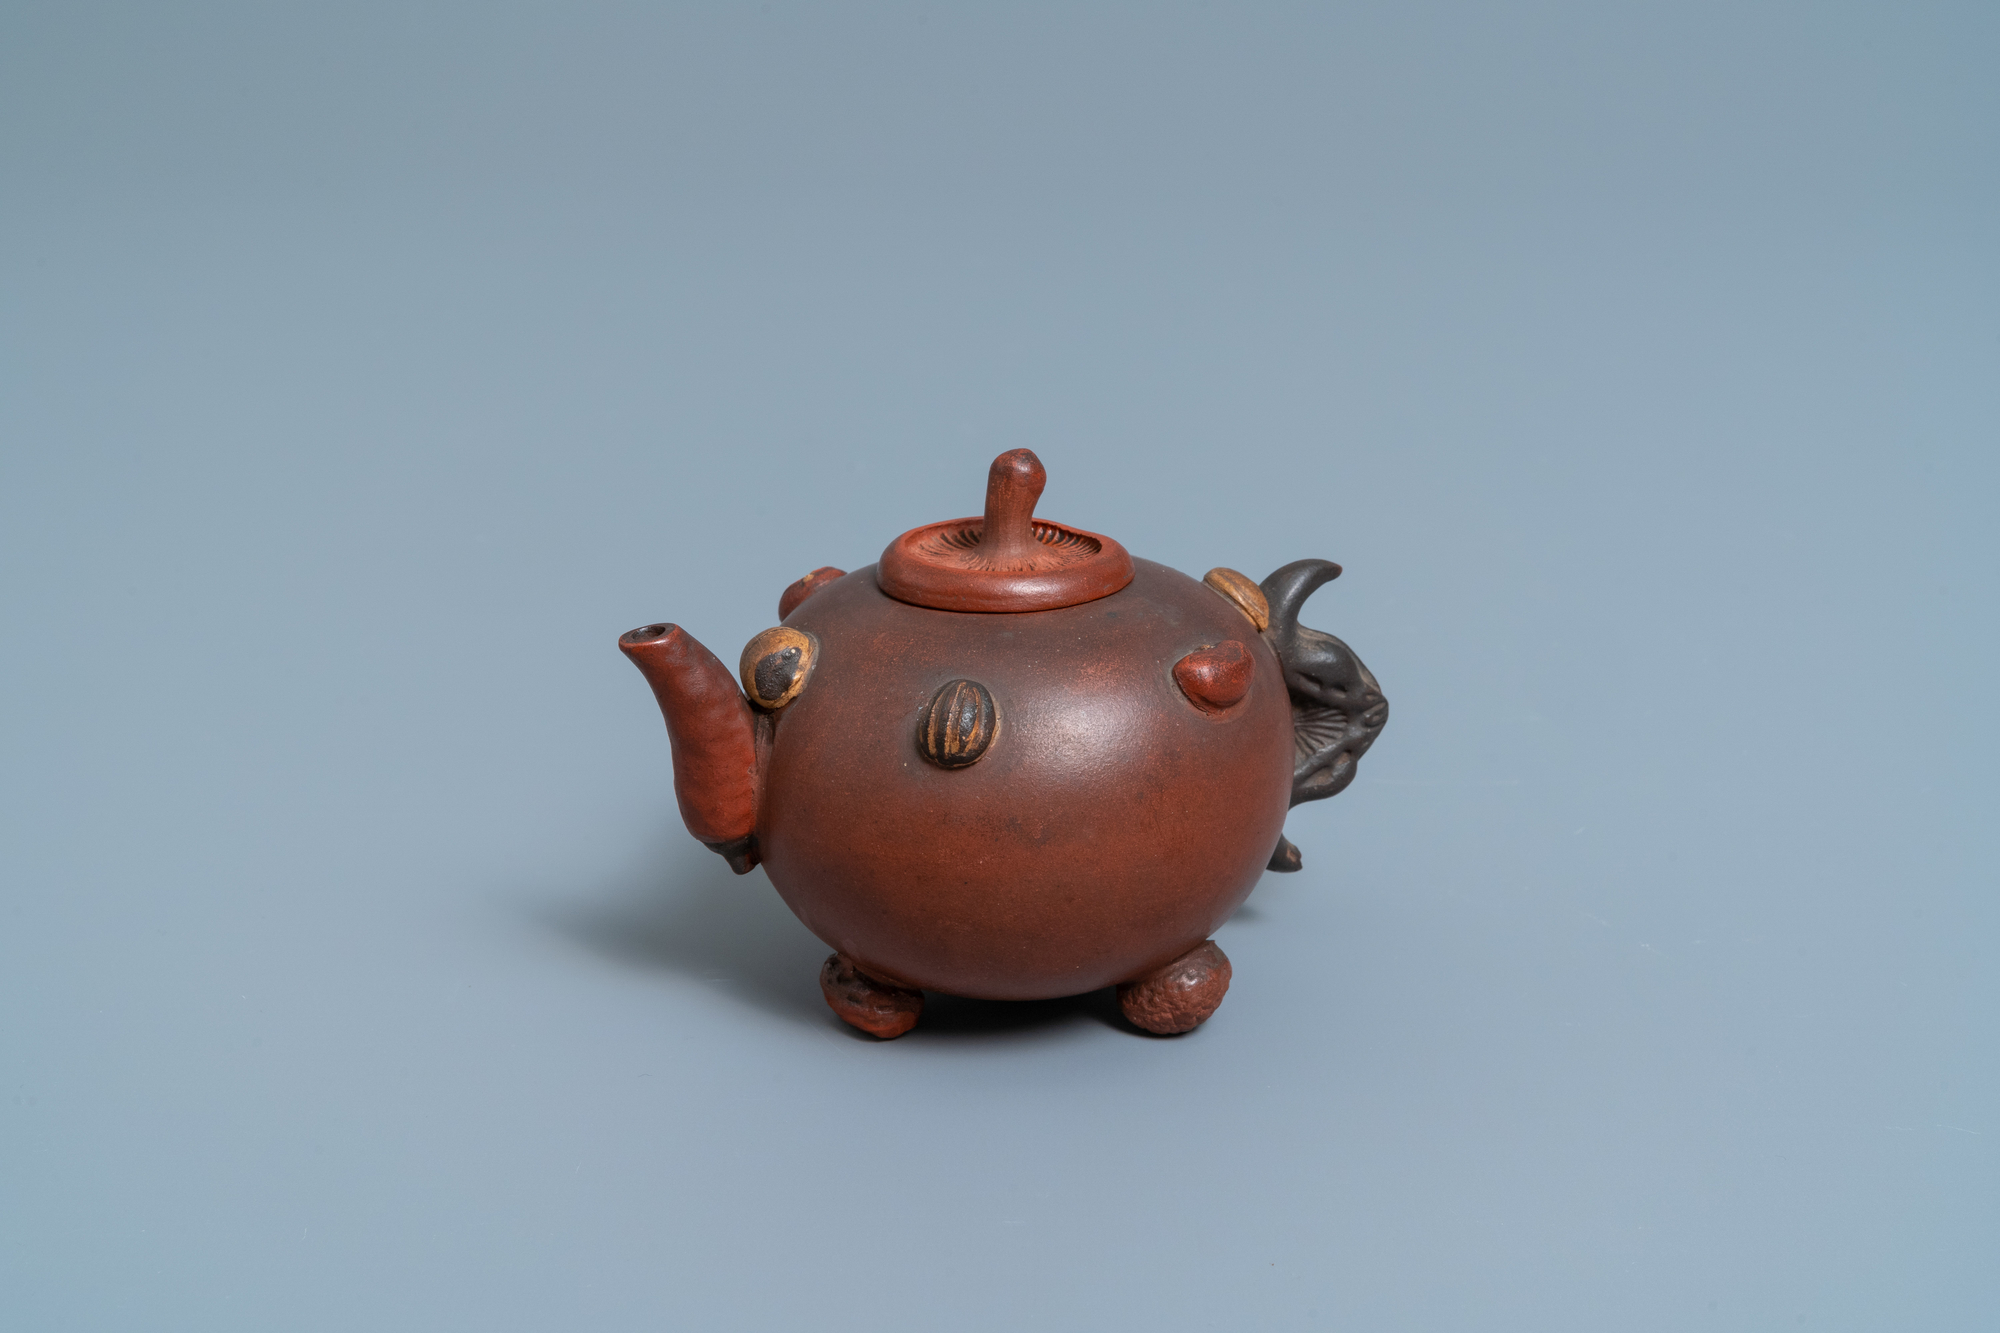 A Chinese Yixing stoneware teapot and cover with applied nuts, 19/20th C.